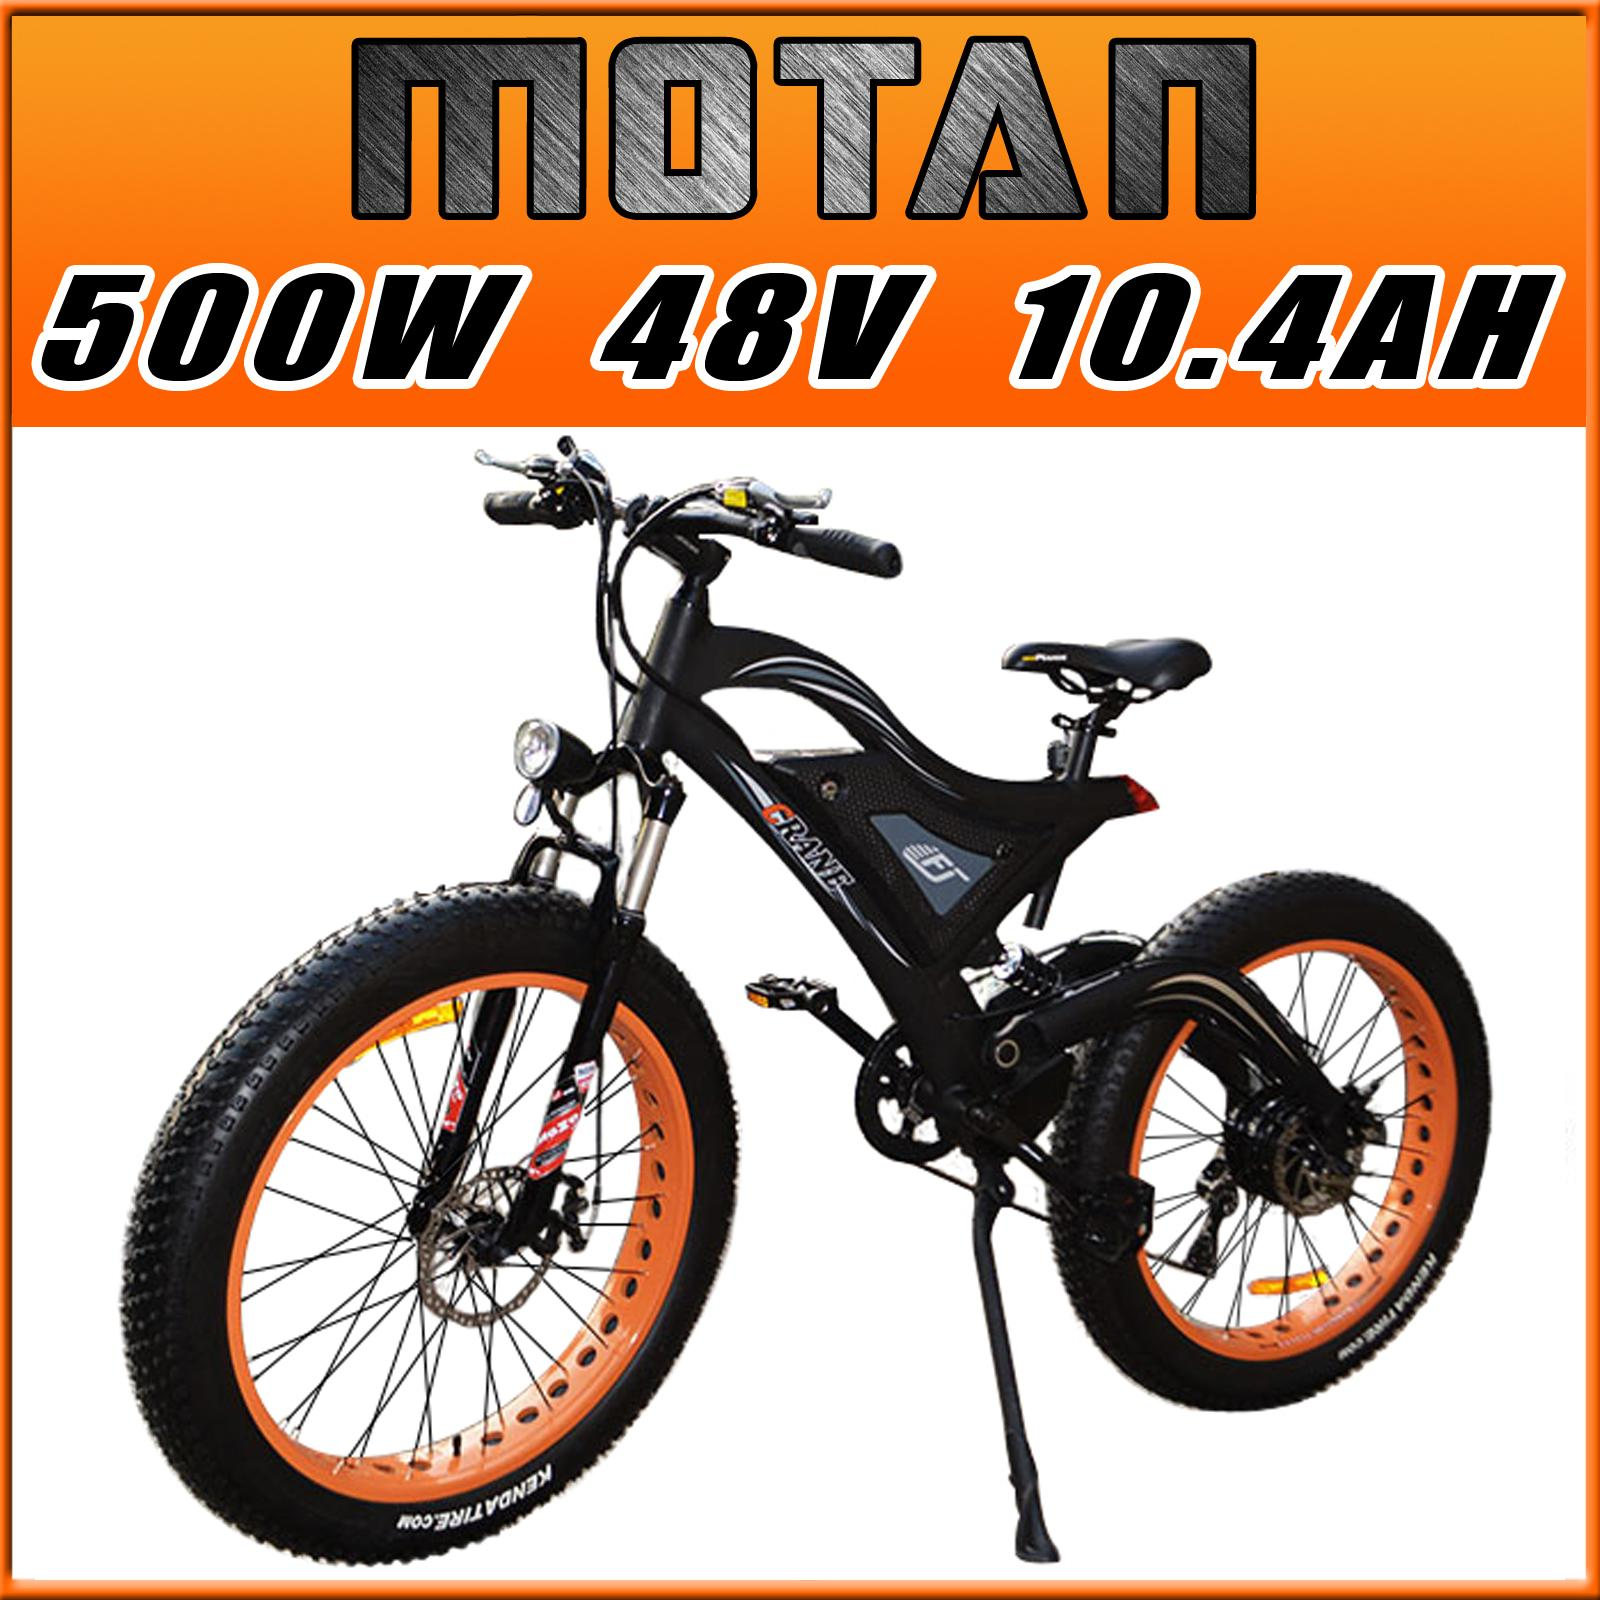 Addmotor Motan Electric Bicycle 500w 48v For Snow Beach All